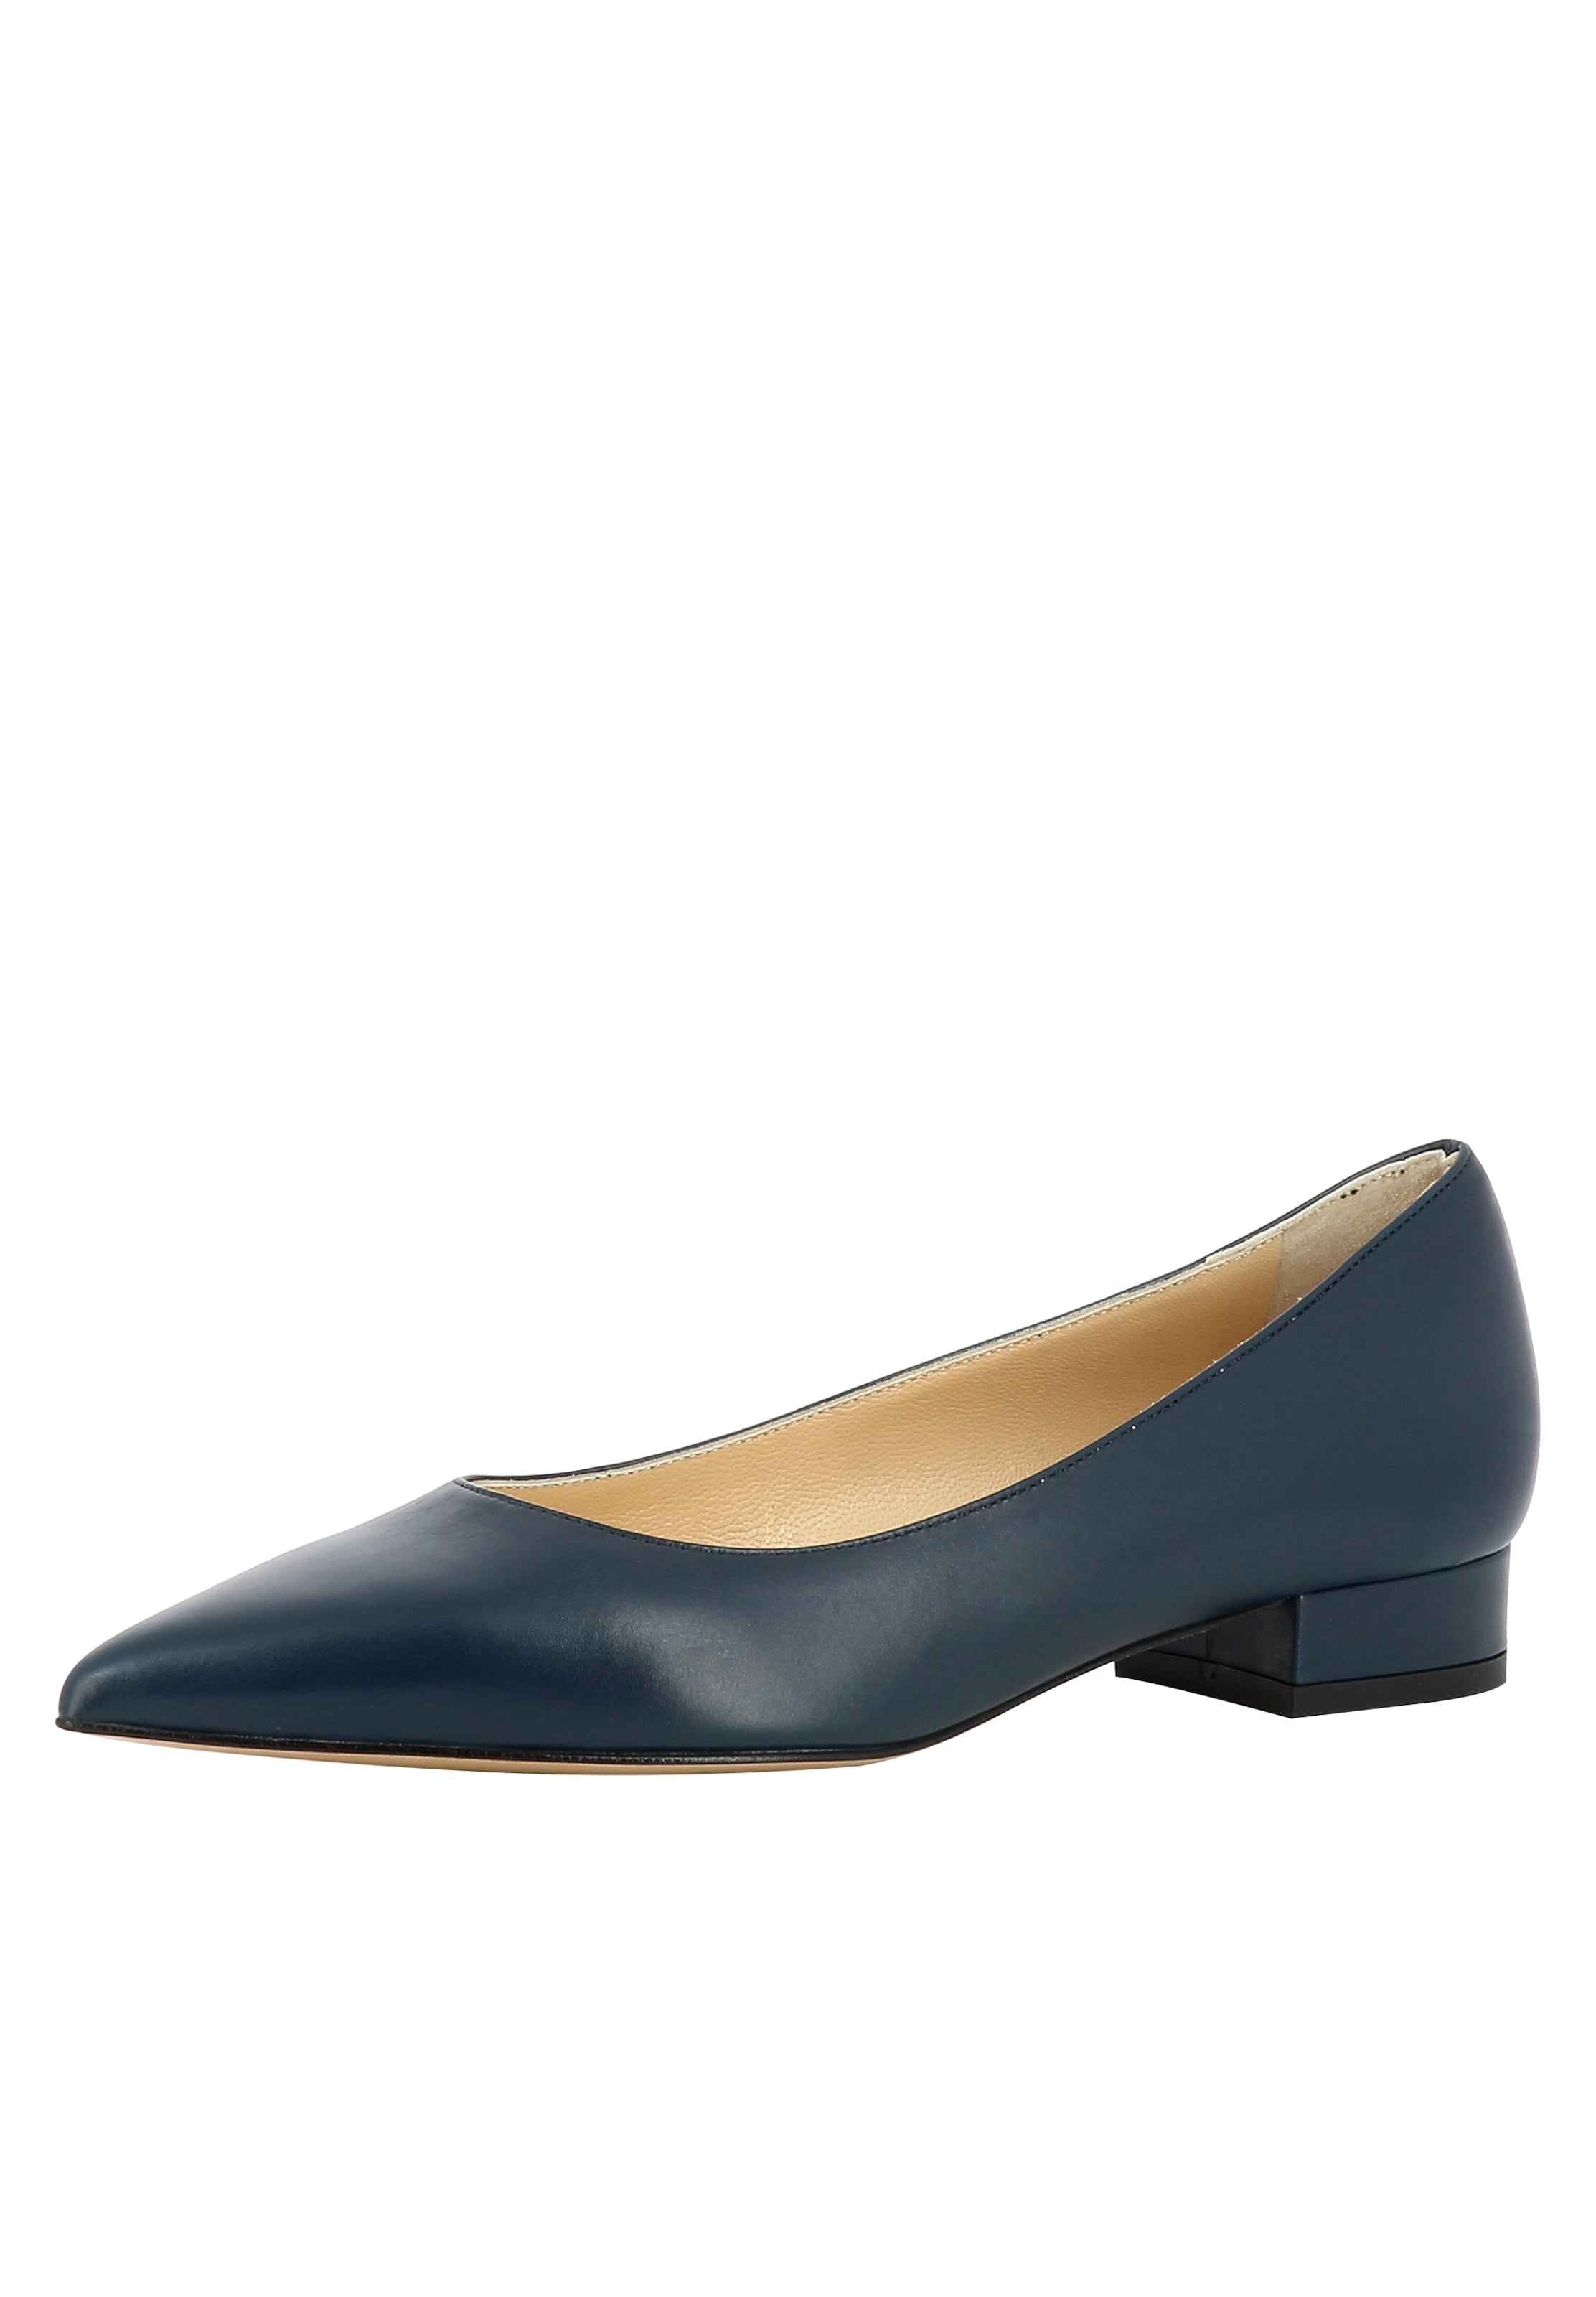 EVITA Damen Pumps  FRANCA